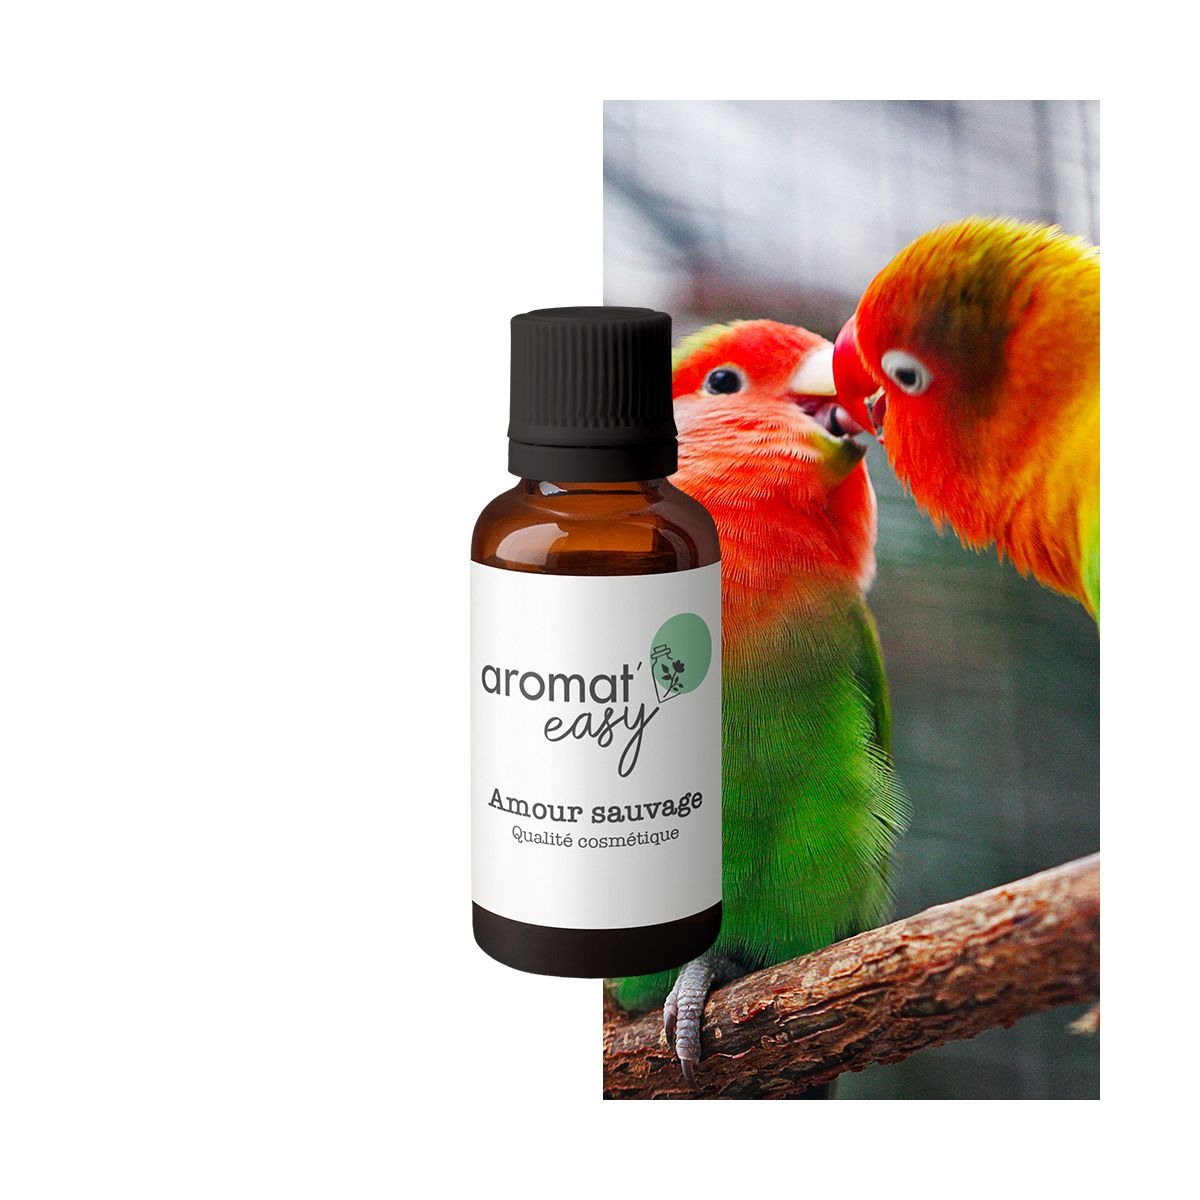 Fragrance Amour sauvage